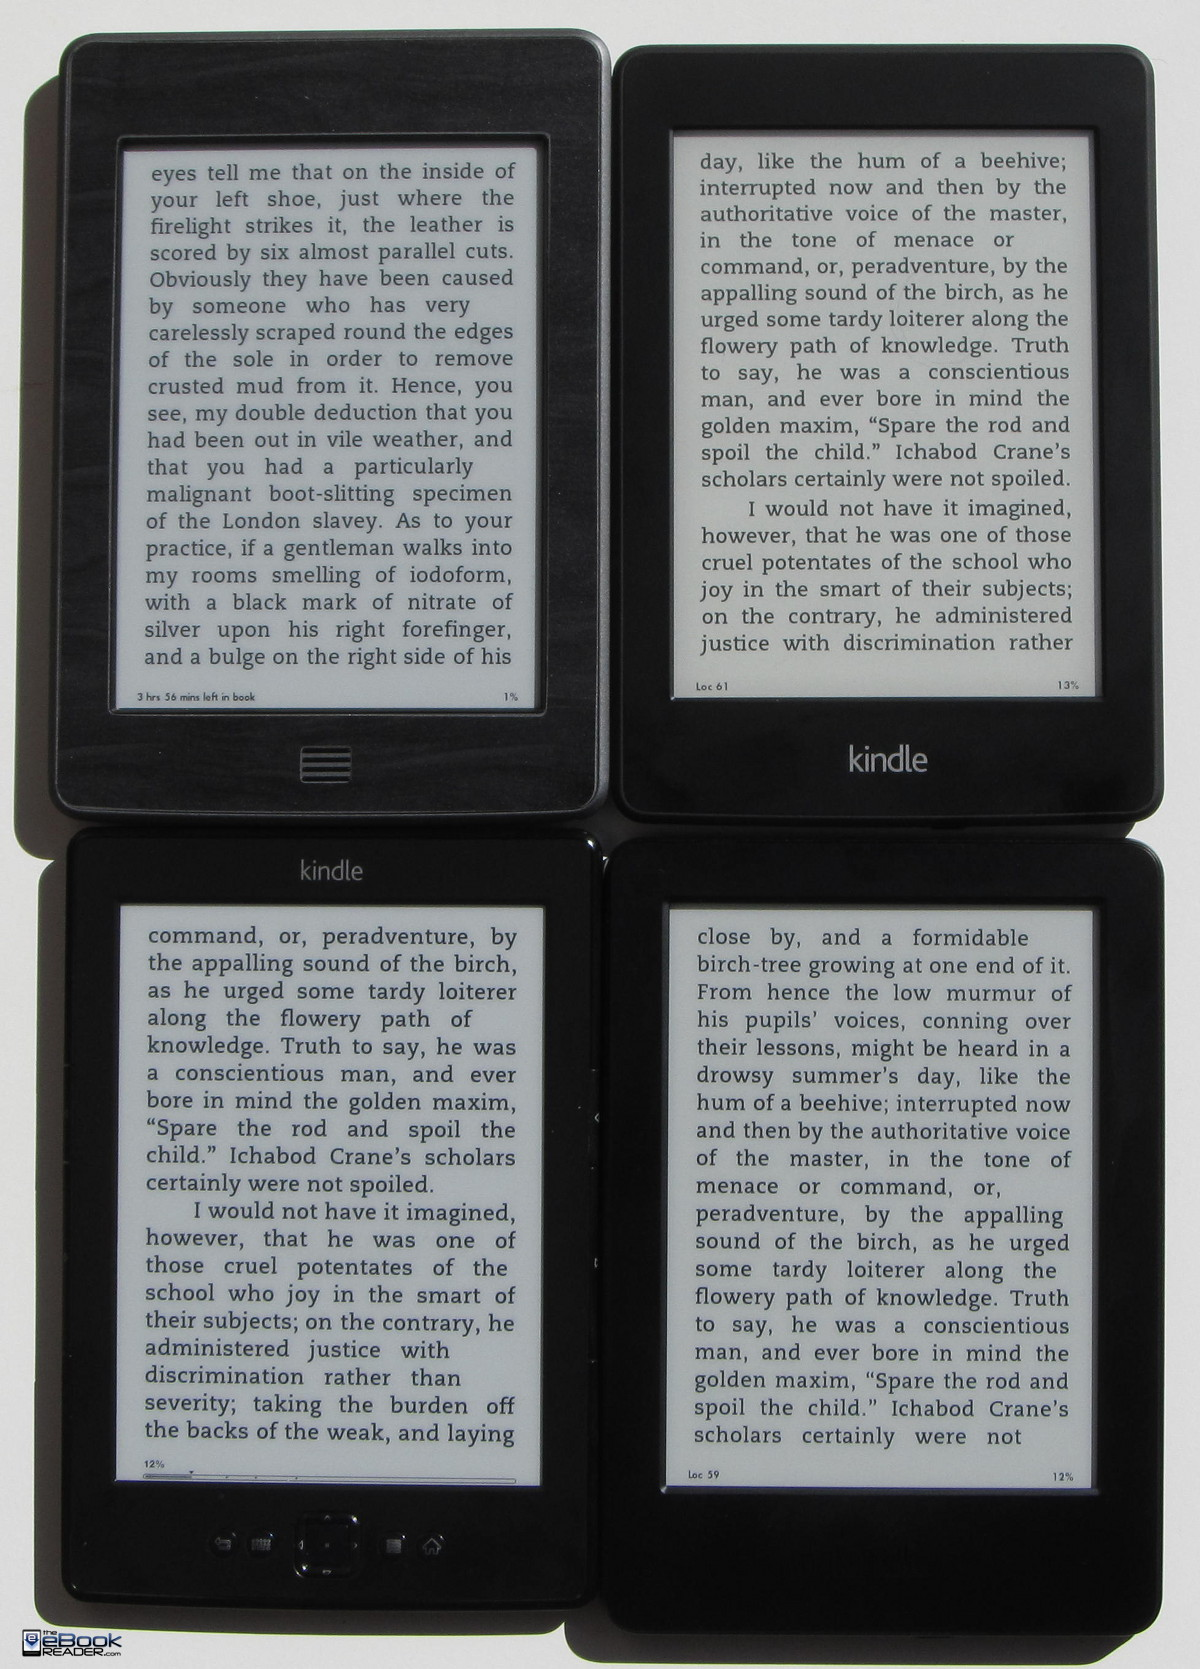 how to read kindle books on my kobo ereader